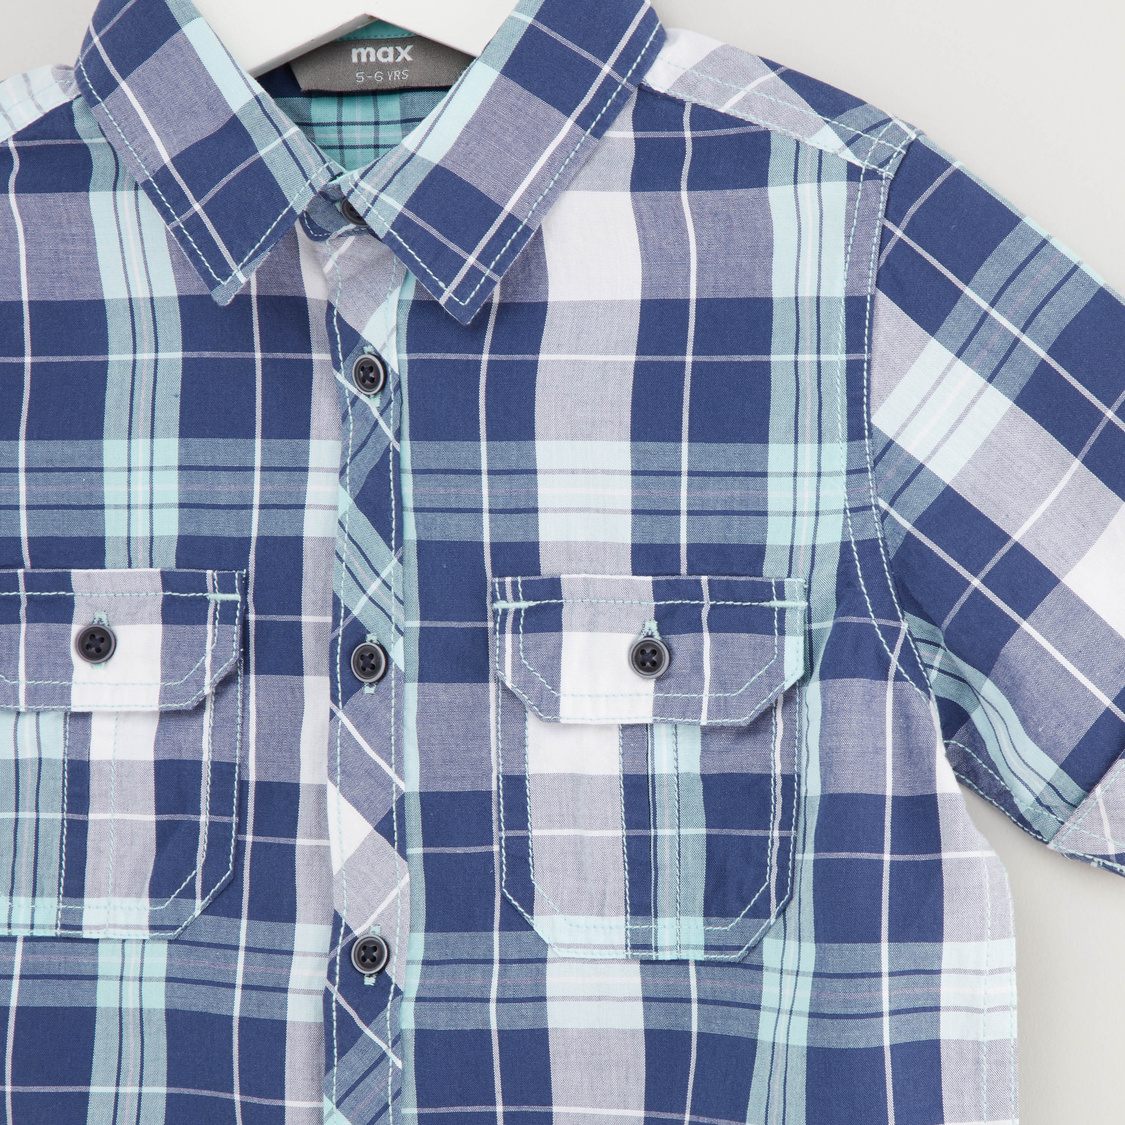 Checked Shirt with Short Sleeves and Pocket Detail